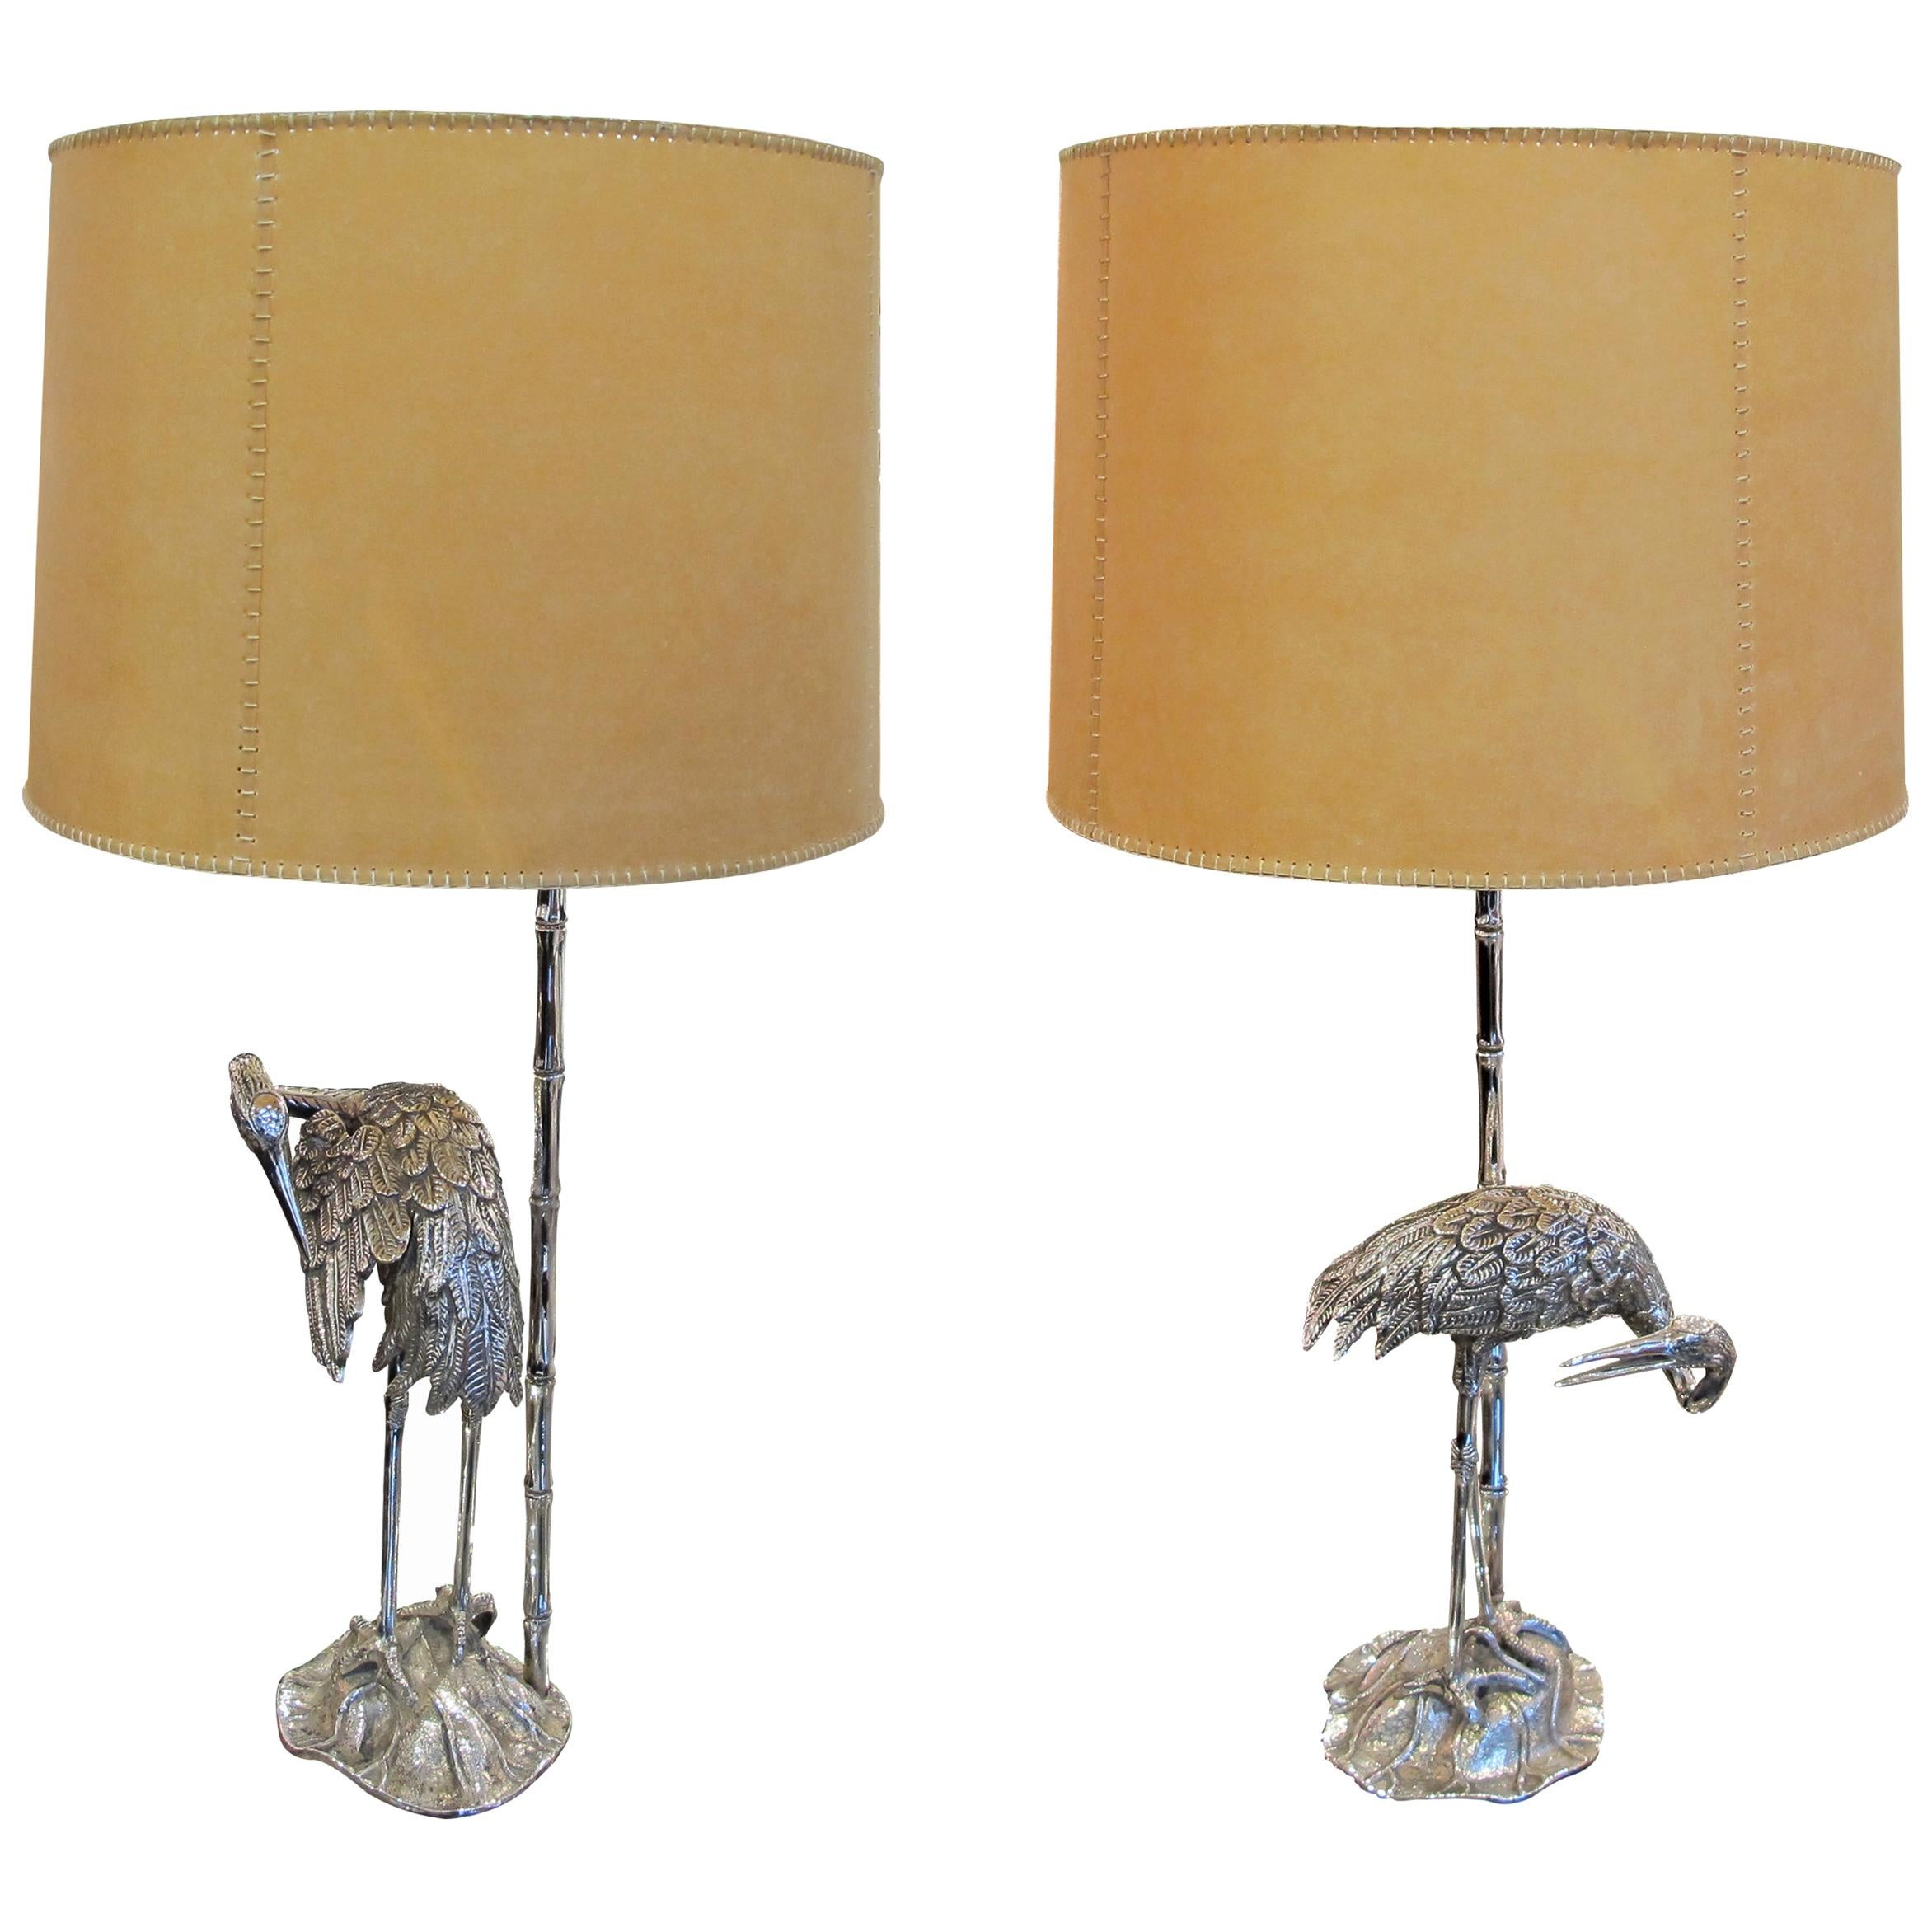 Pair of 1960s Spanish Silver Plated Bronze Heron Table Lamps by Valenti